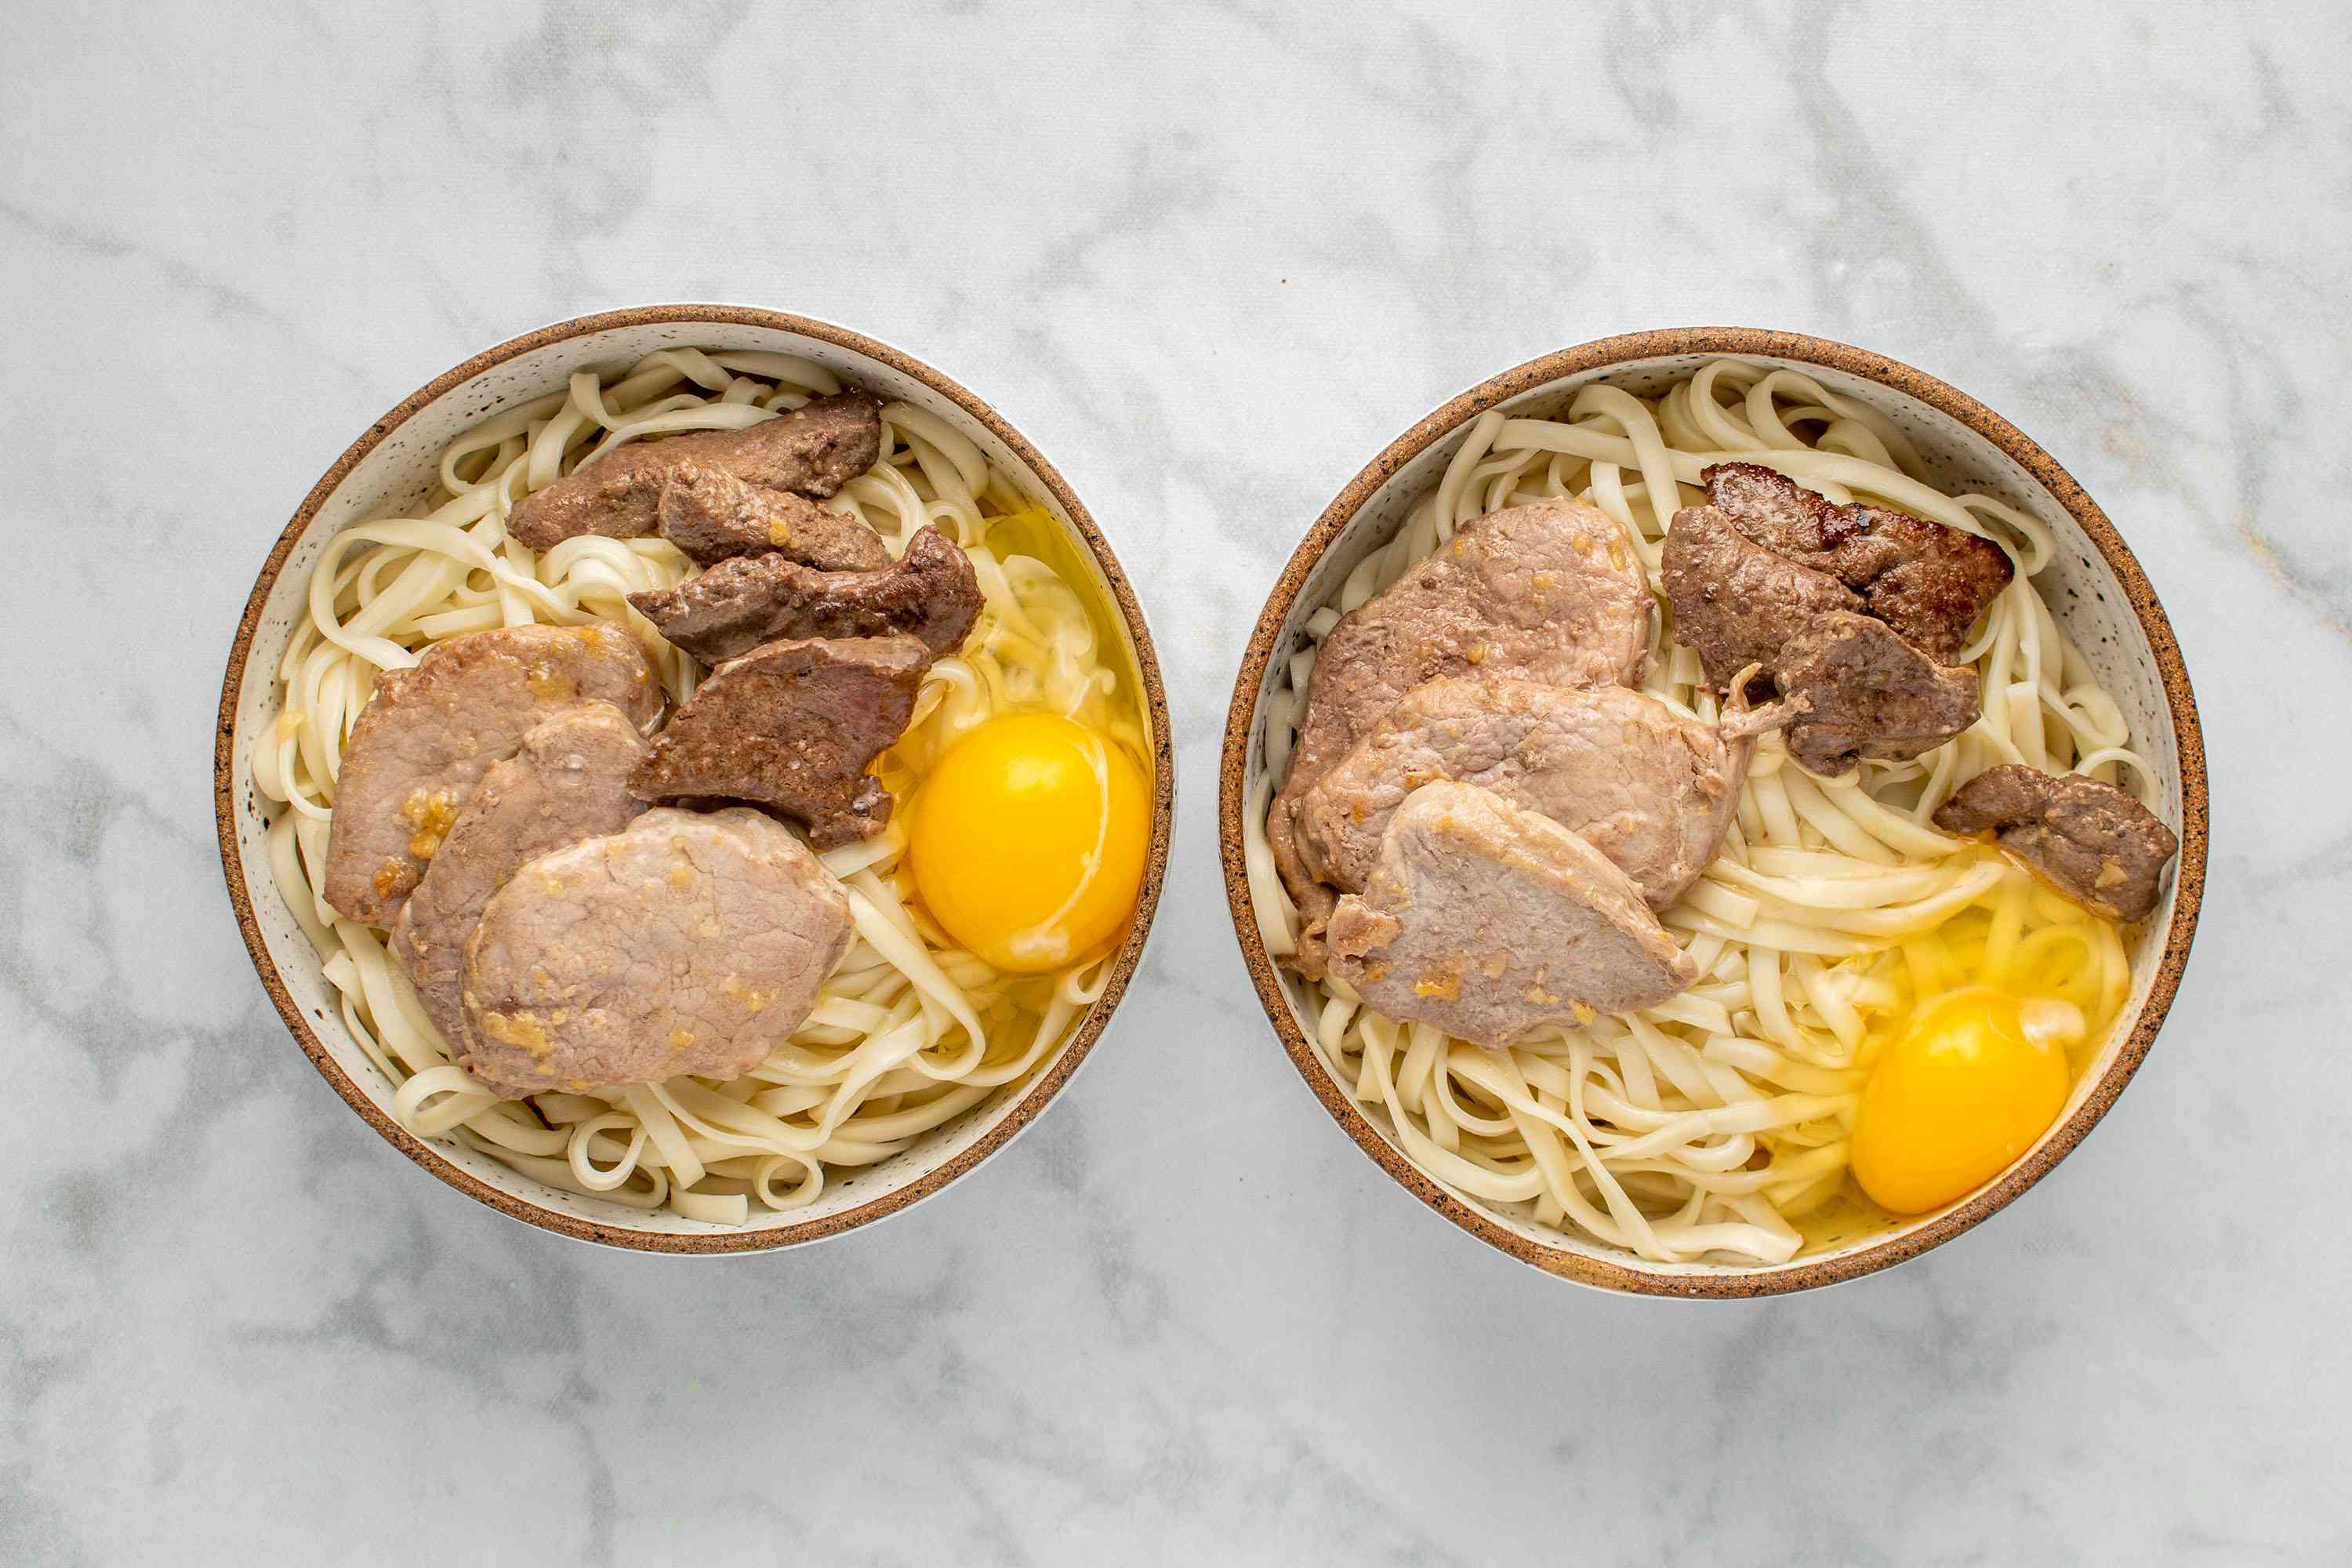 Crack an egg over the noodles and meat in a bowl